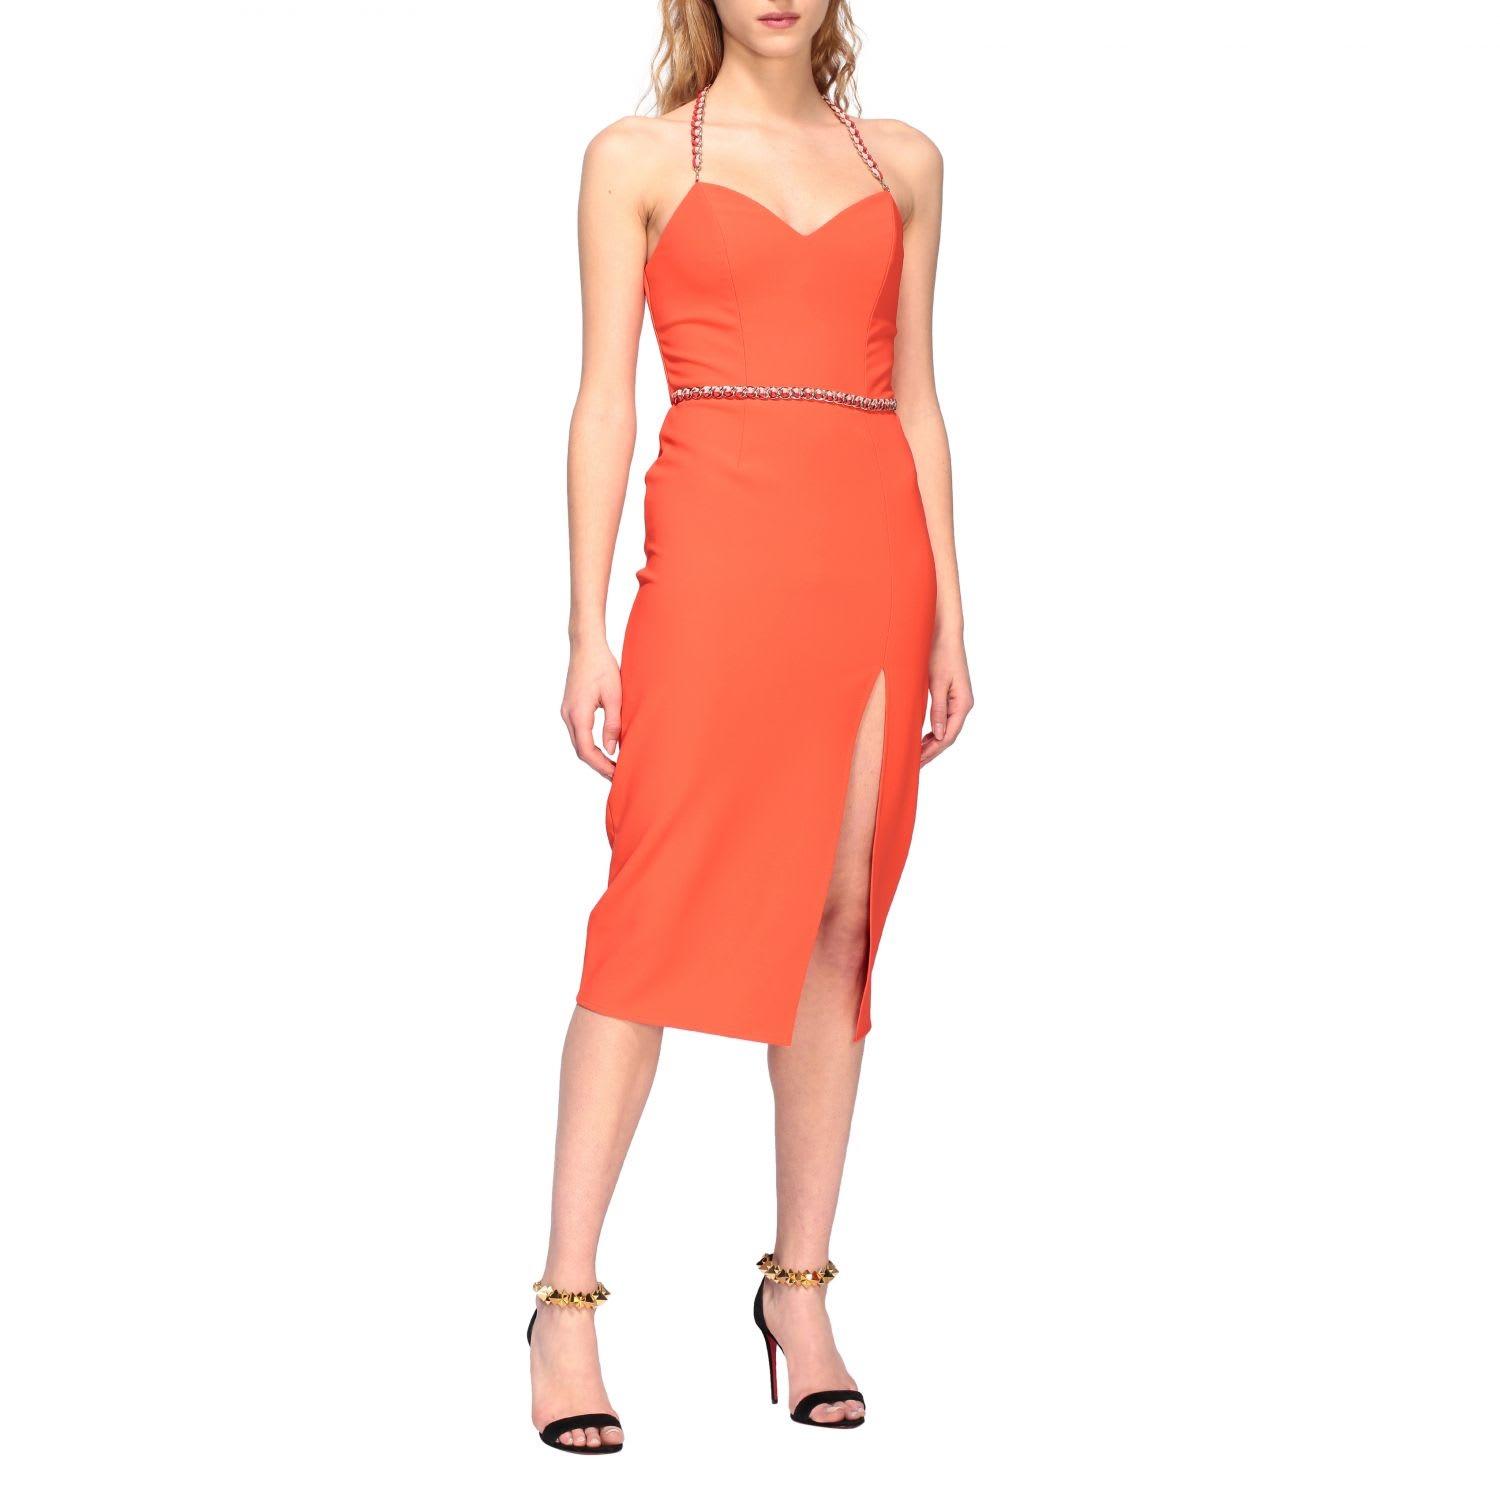 Buy Elisabetta Franchi Dress Elisabetta Franchi Sheath Dress With Chain online, shop Elisabetta Franchi Celyn B. with free shipping